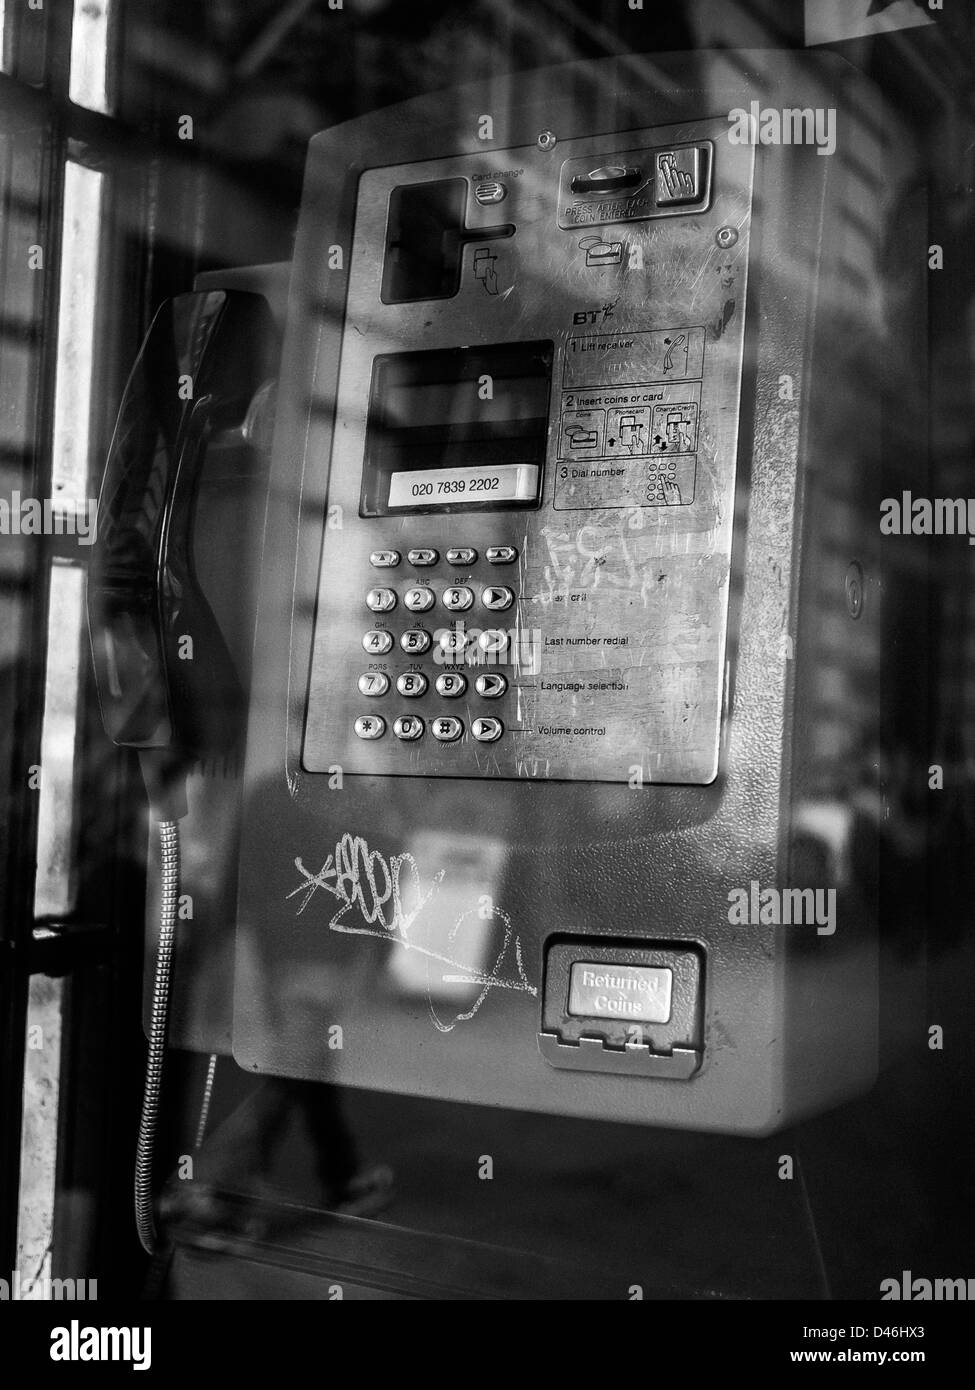 Public Telephone Box in central London - Stock Image